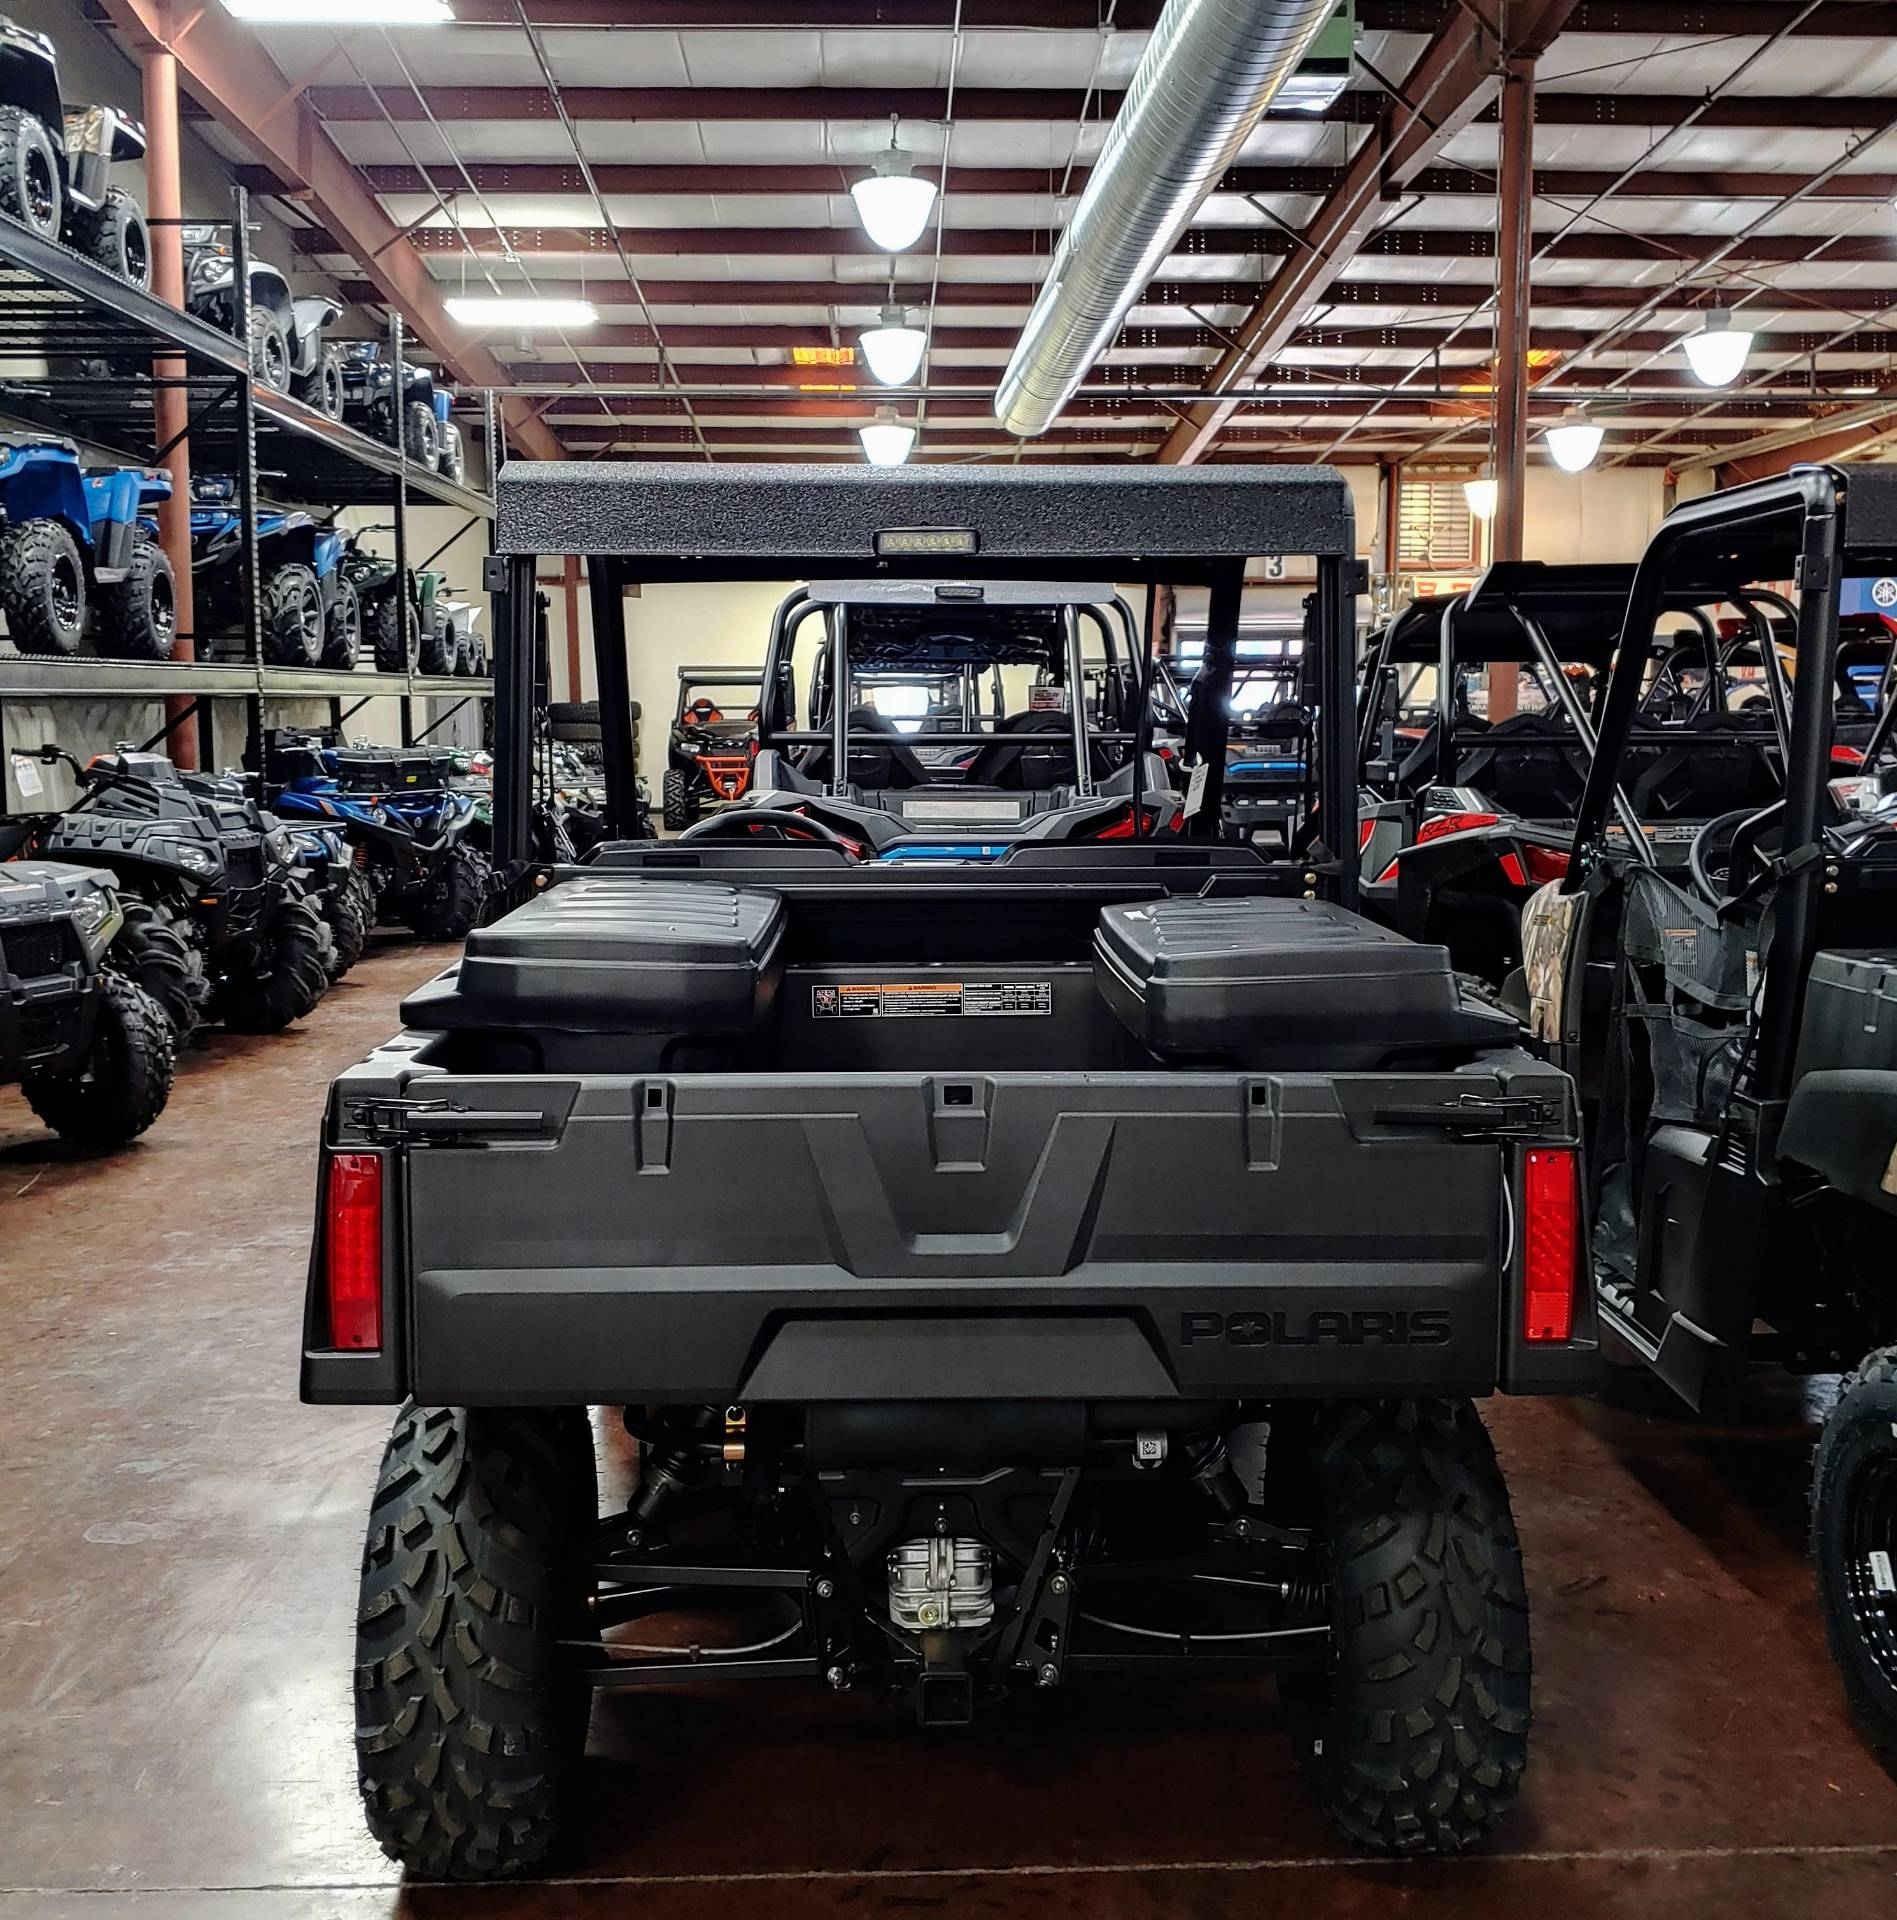 2019 Polaris Ranger 500 in Statesville, North Carolina - Photo 4